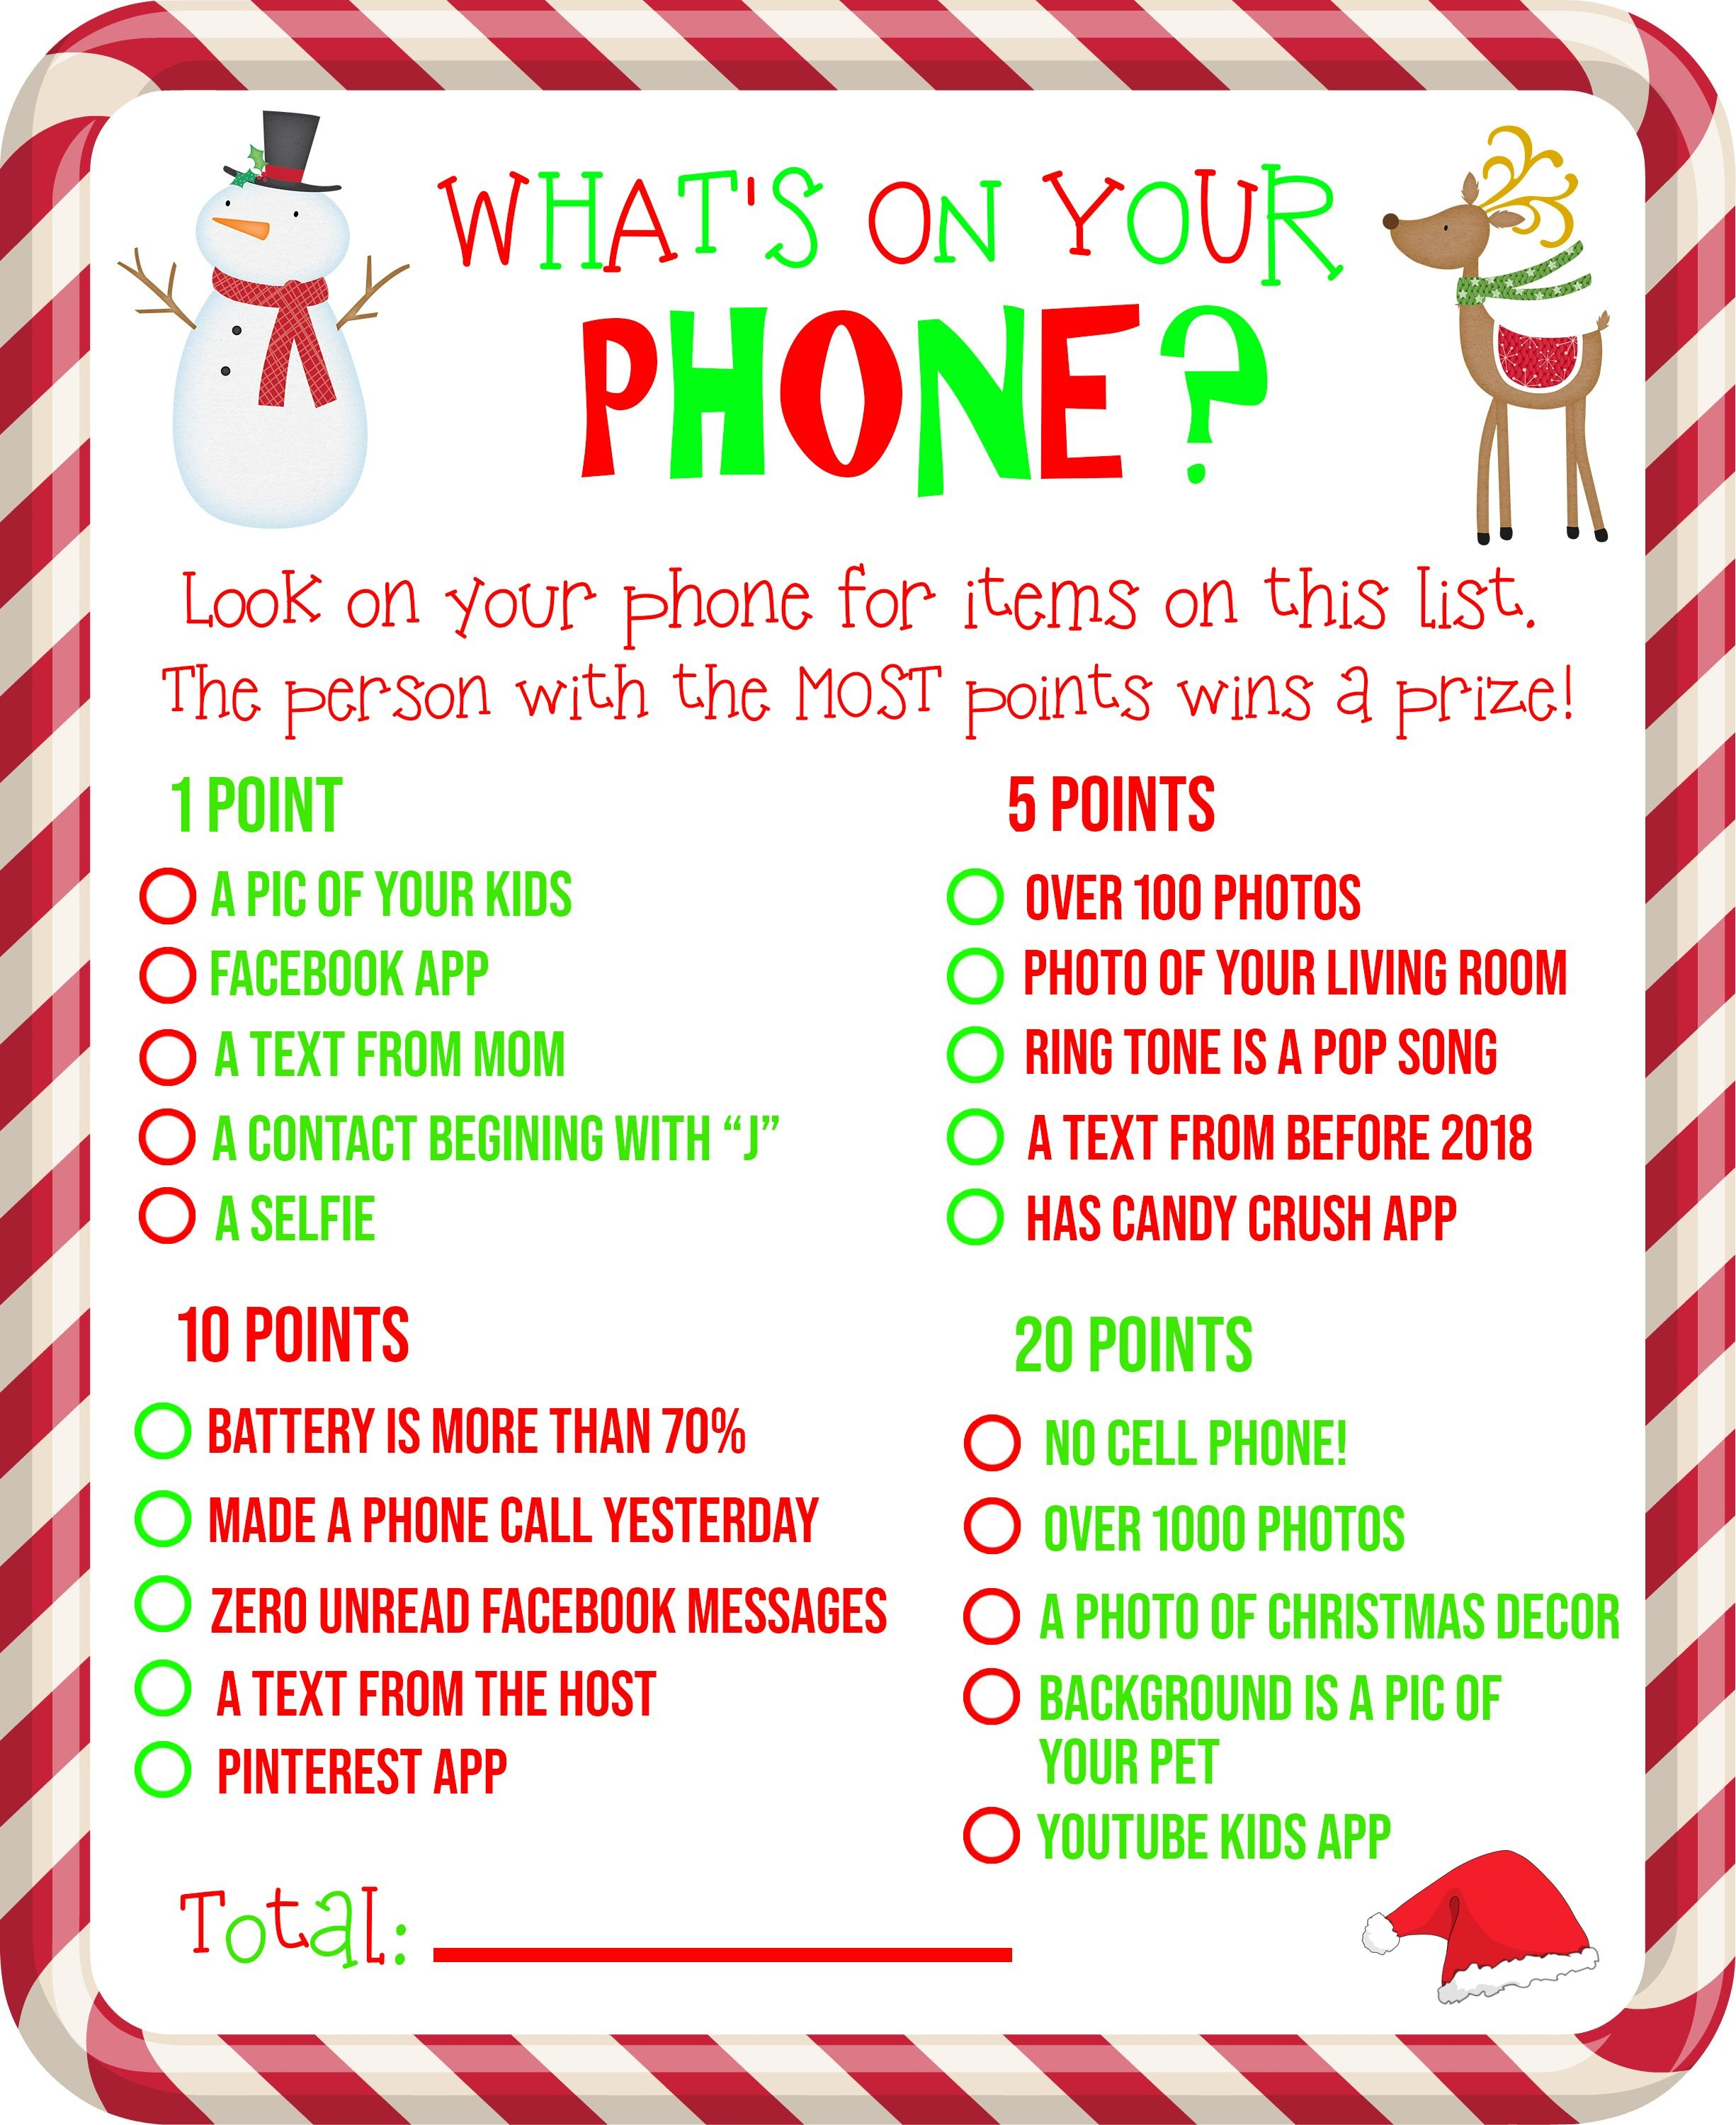 Free Printable! What's On Your Phone Christmas Party Game - Free Printable Christmas Games For Family Gatherings